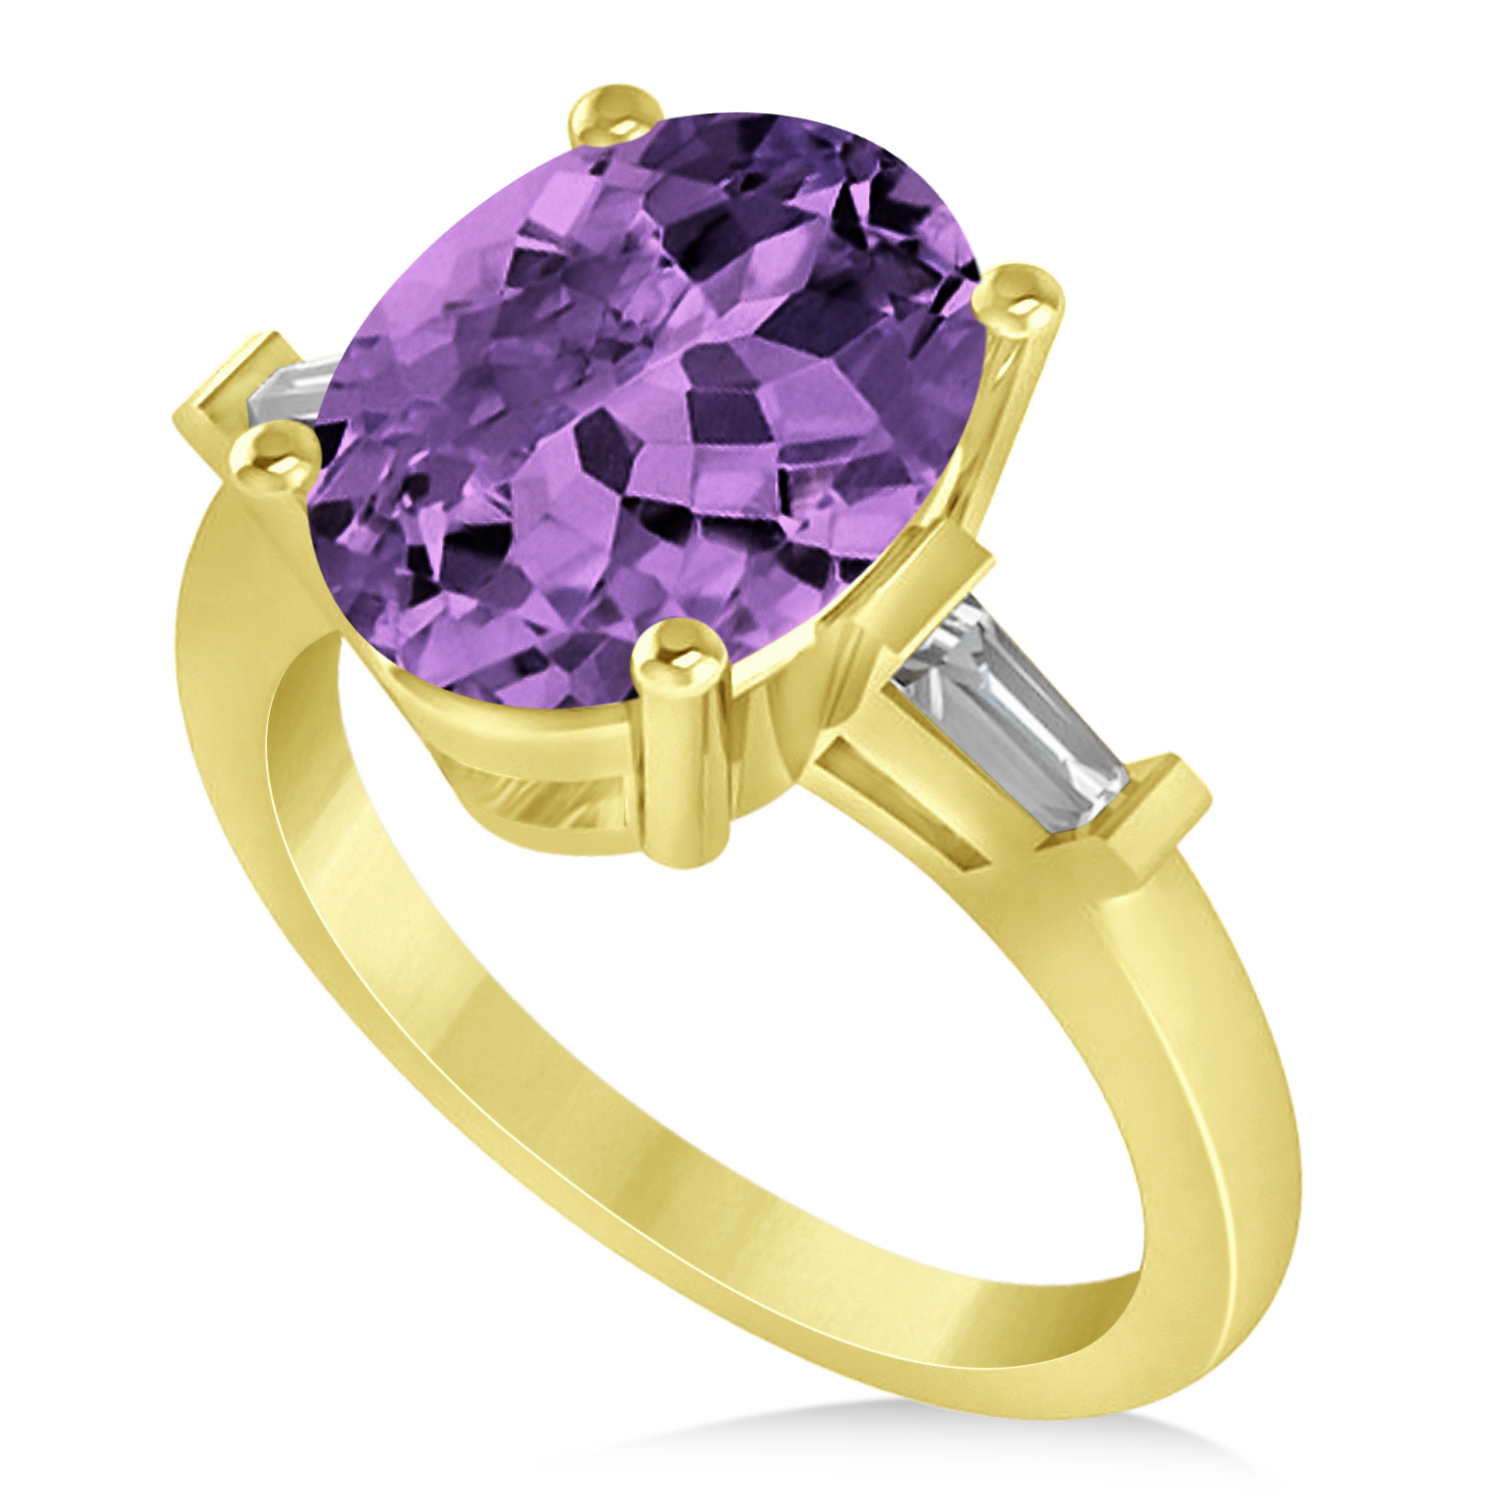 oval baguette cut amethyst engagement ring 14k yellow